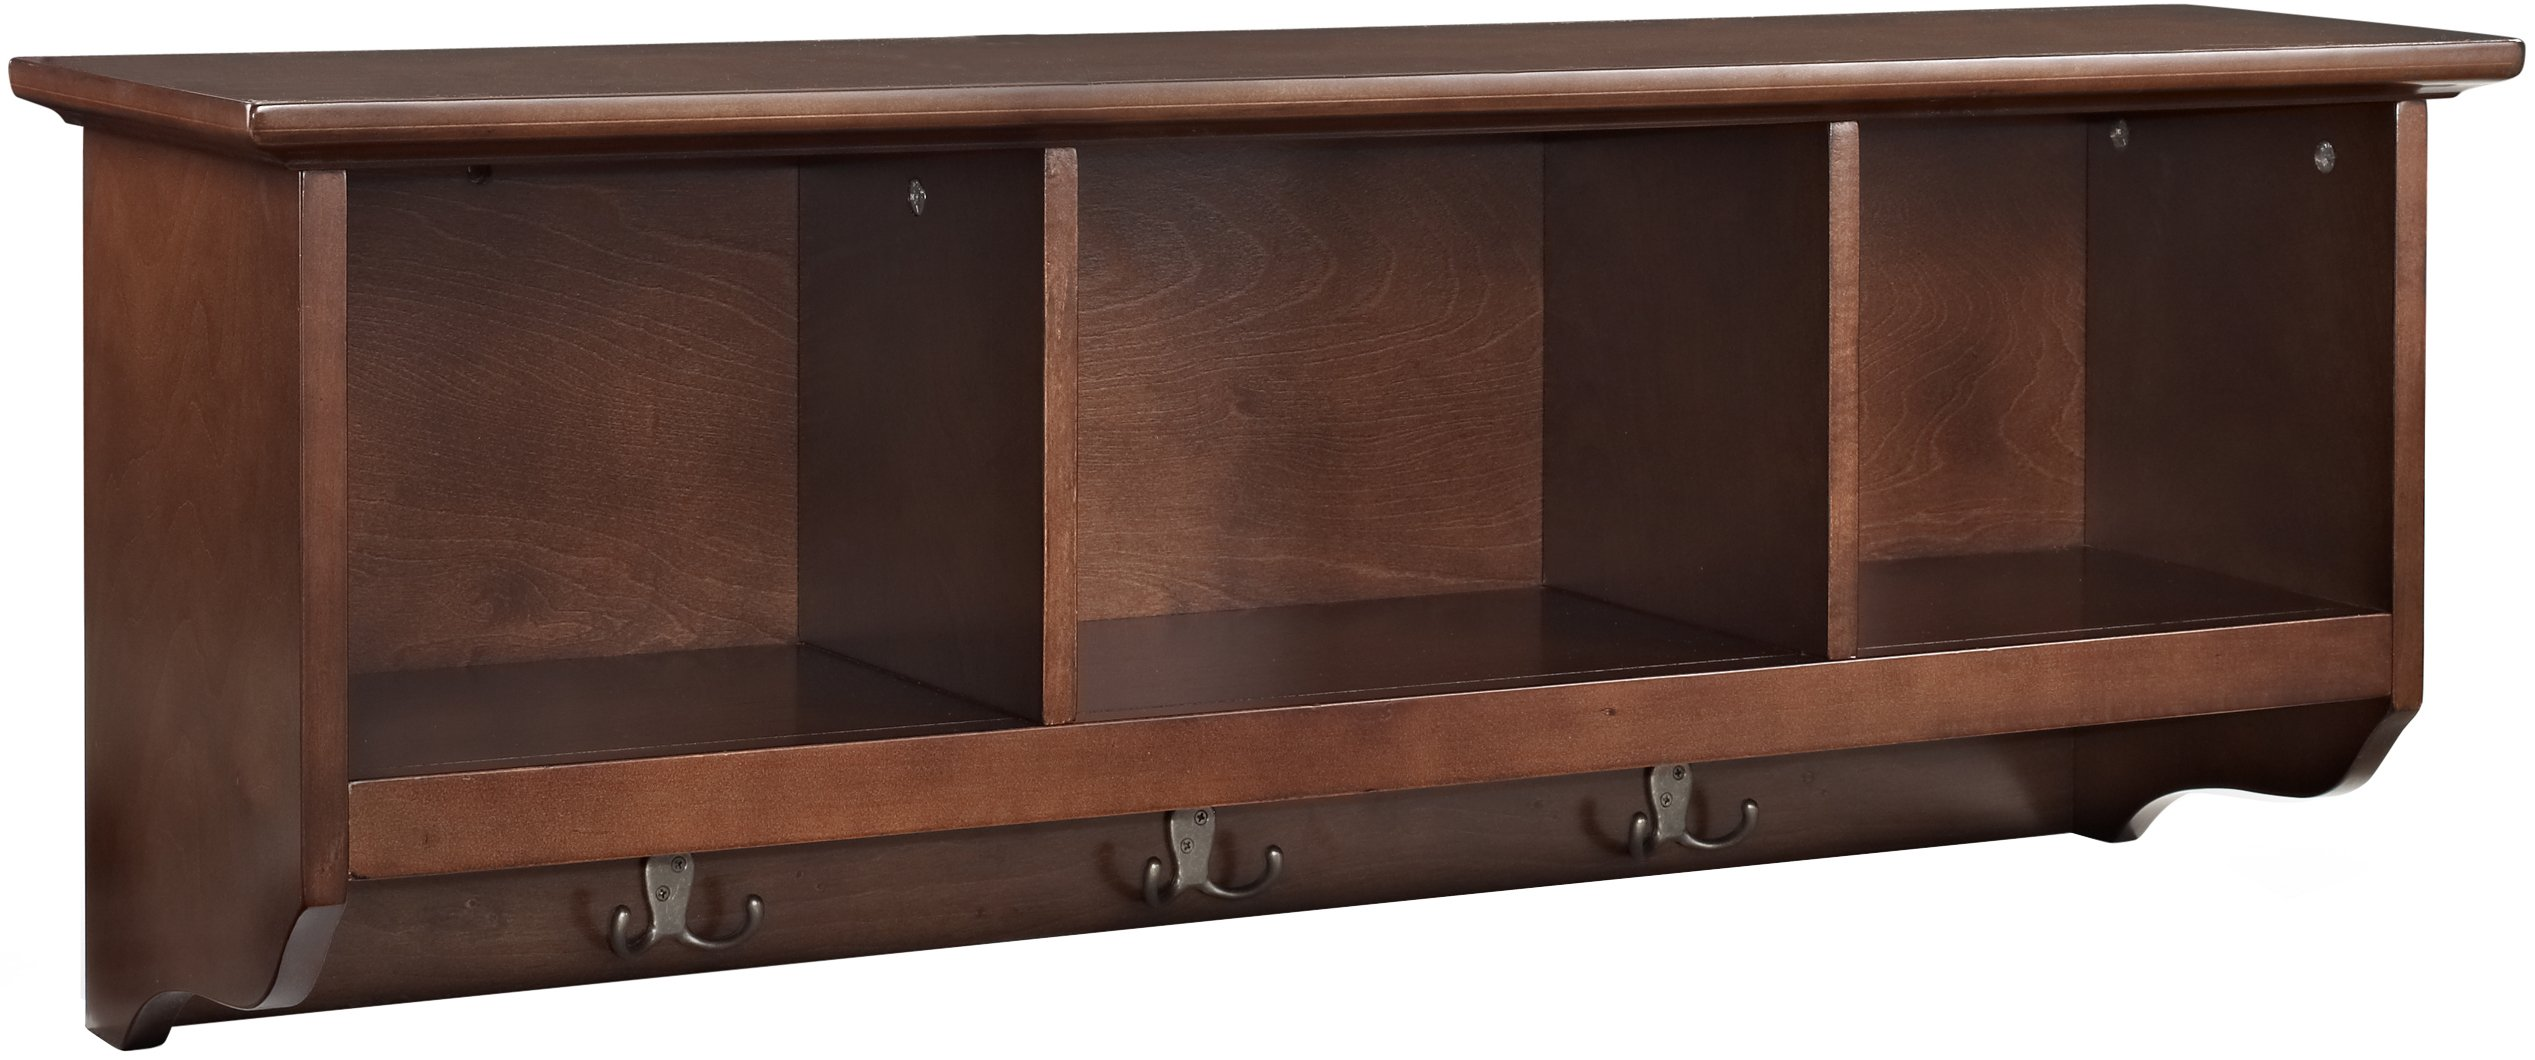 Crosley Furniture Brennan Entryway Hanging Storage Shelf - Vintage Mahogany by Crosley Furniture